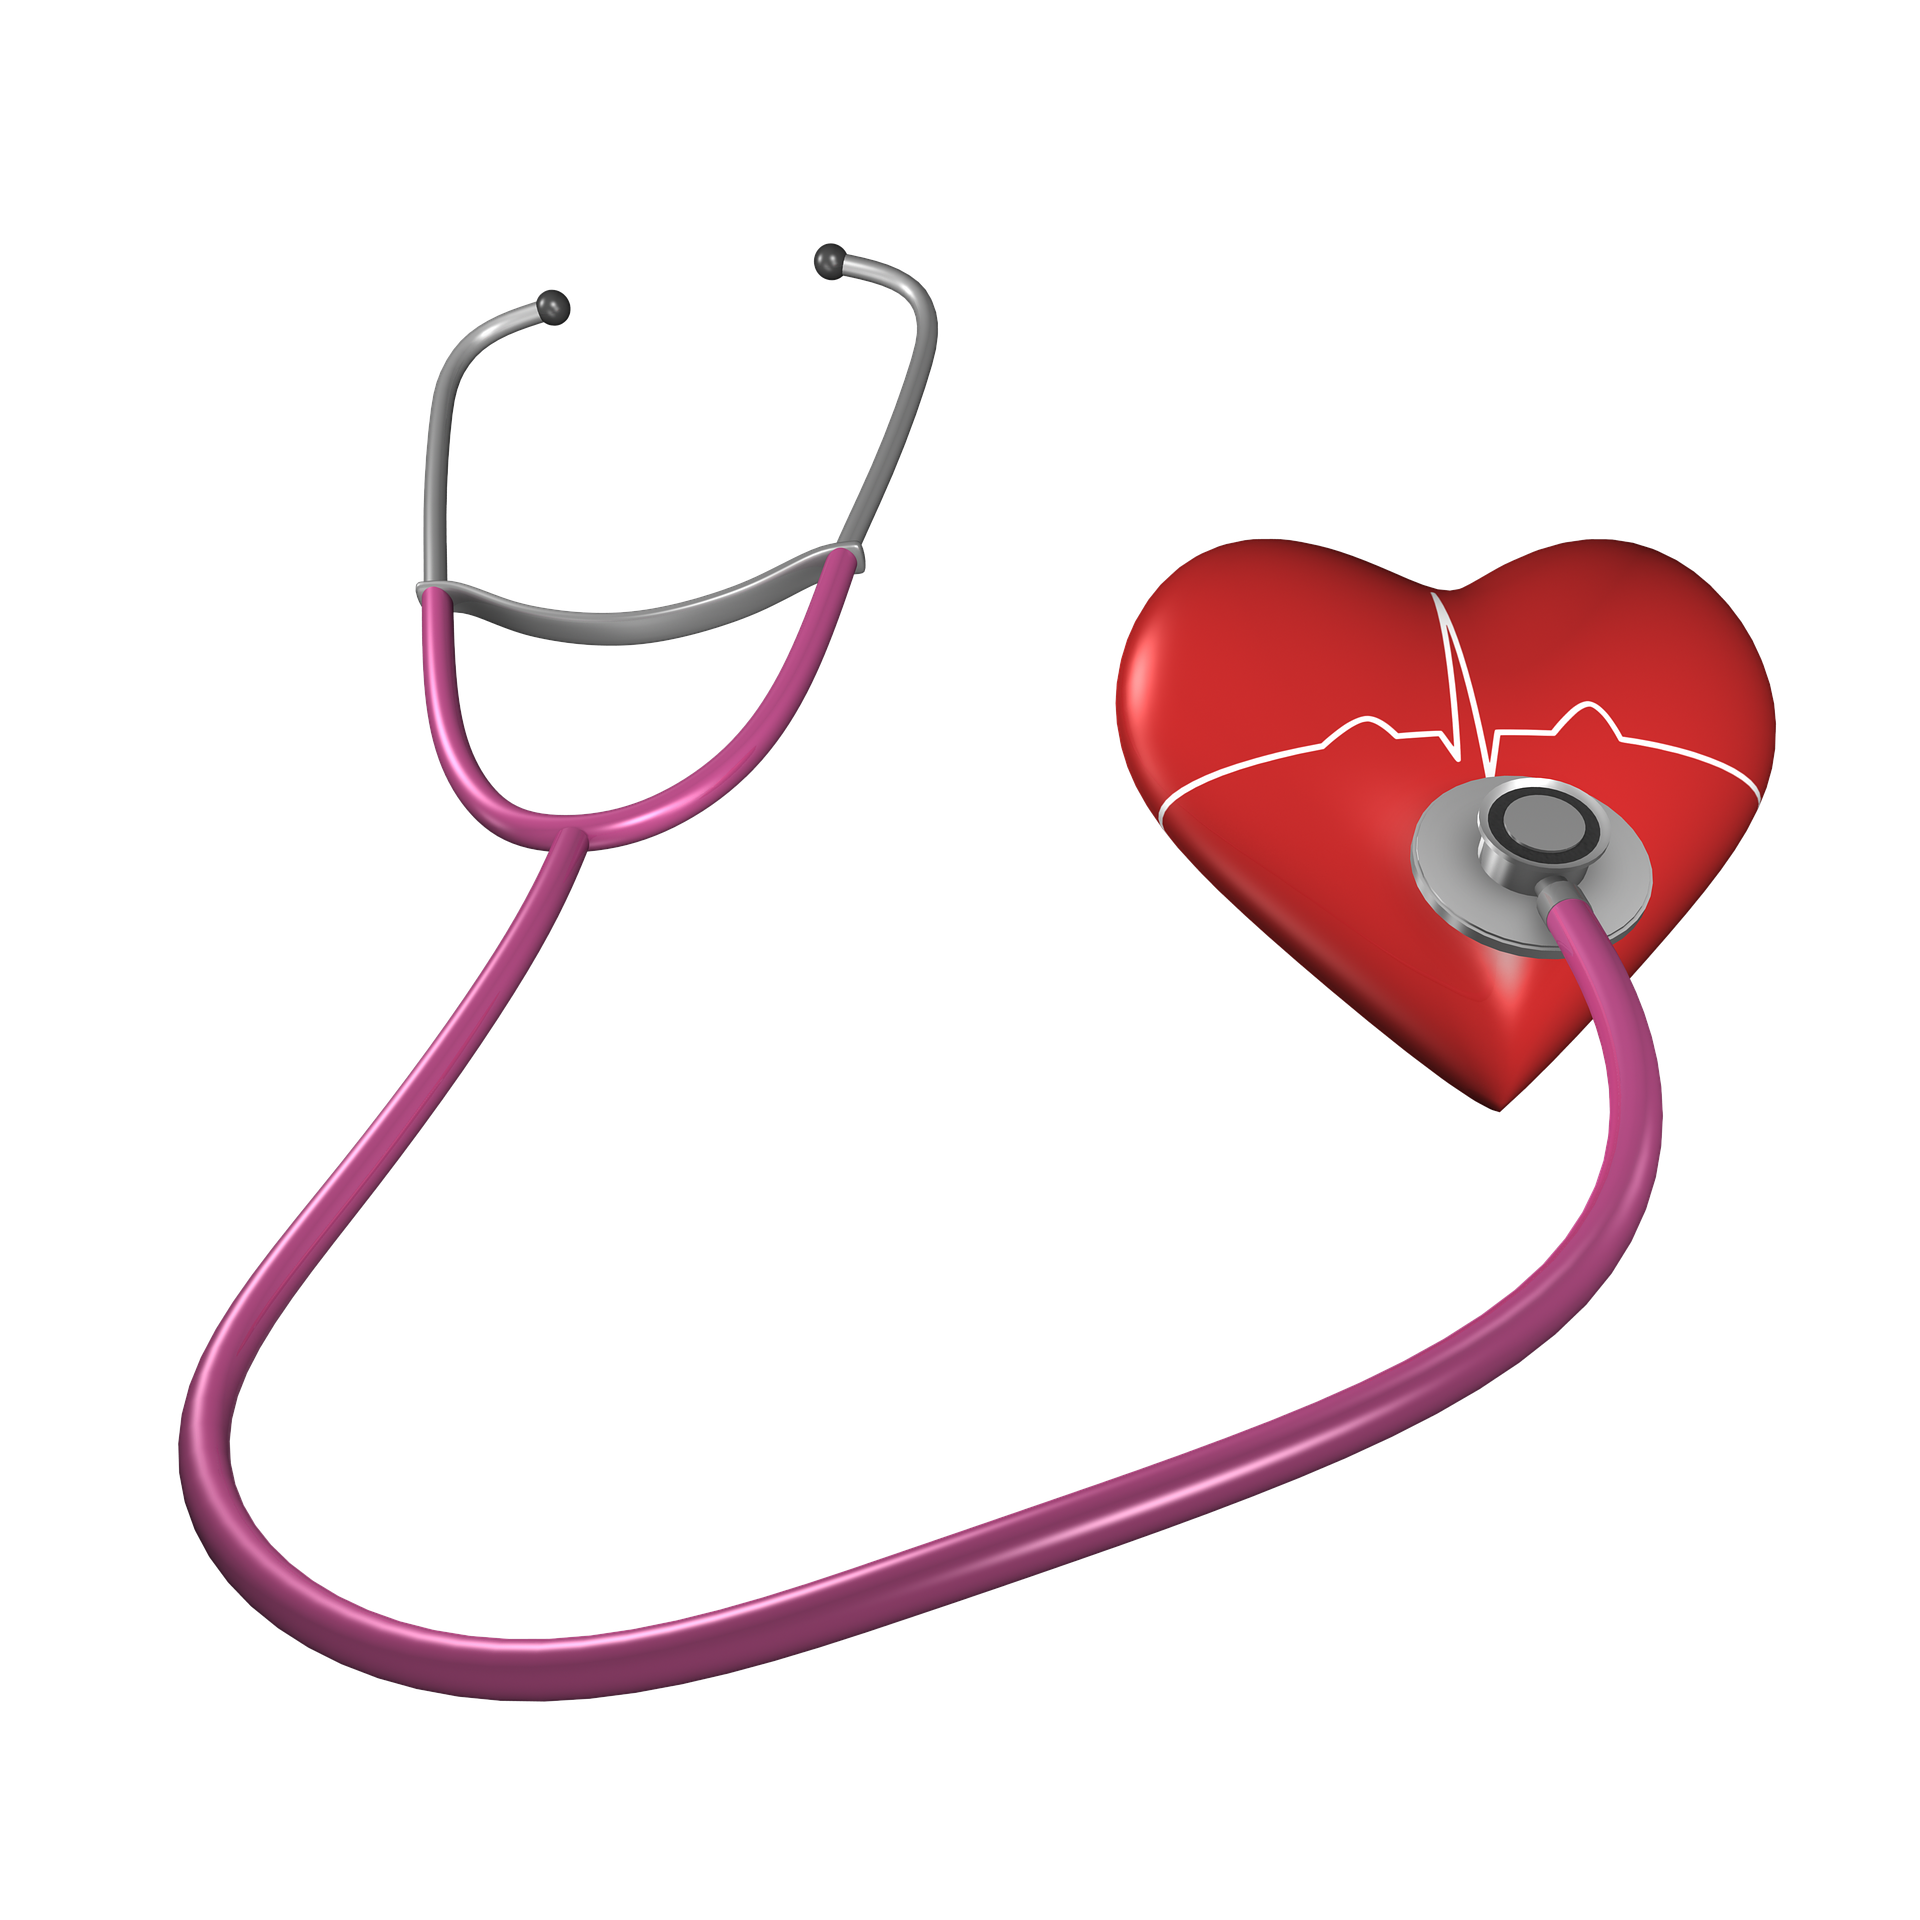 Stethoscope is listening to a heart beat